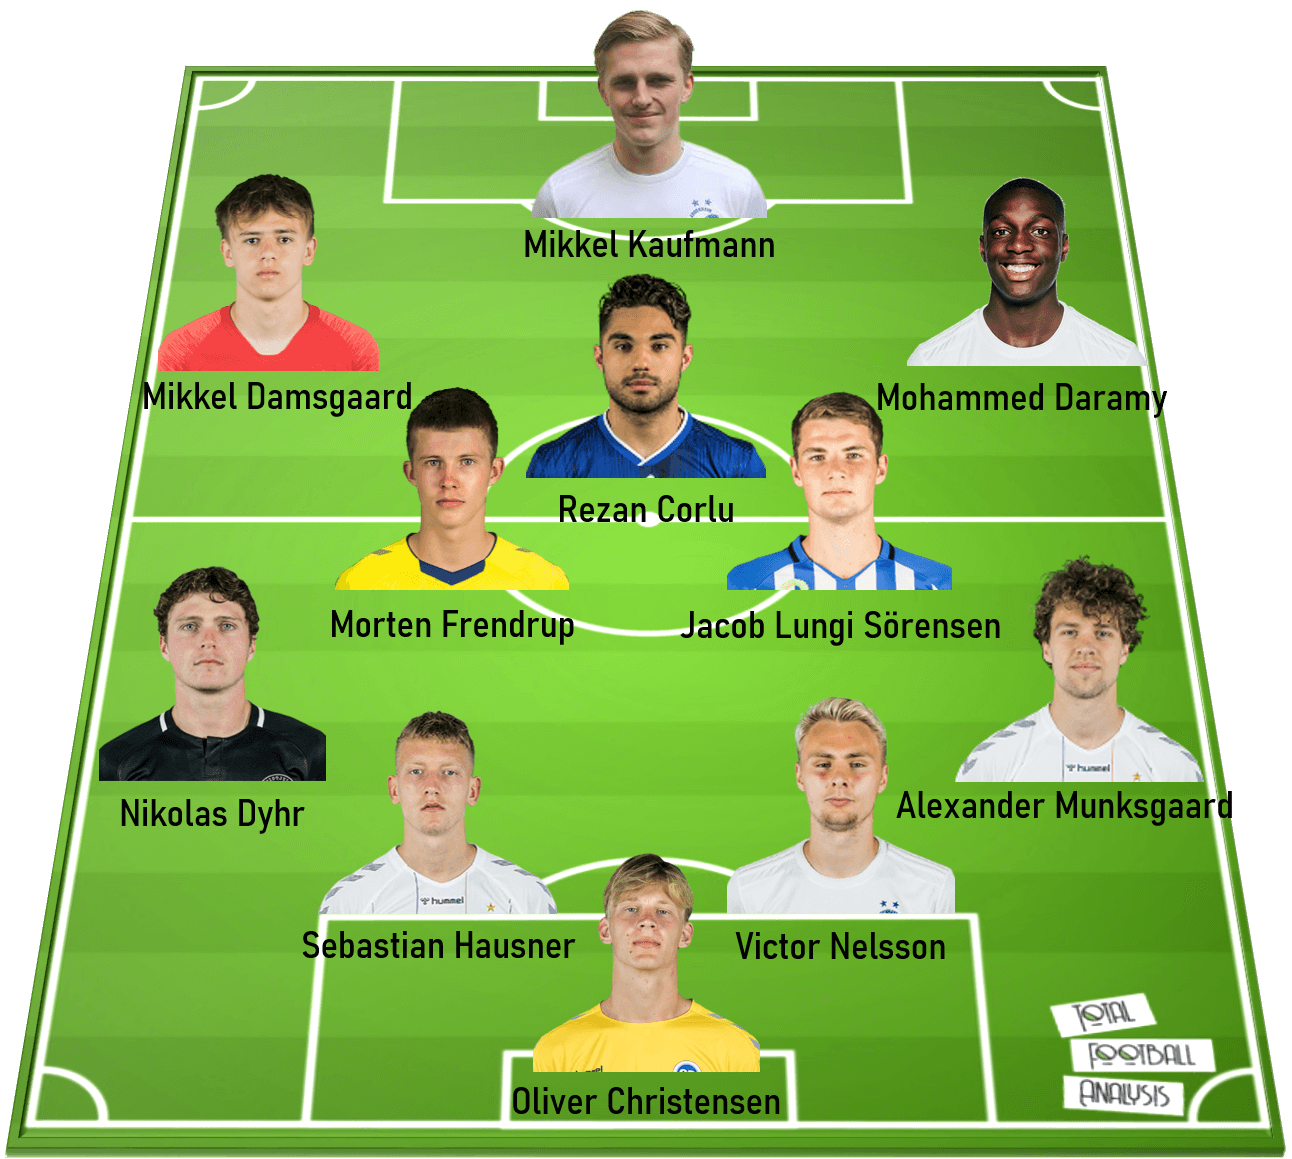 3F Superliga 2019/20: The U23 All-Stars – data analysis statistics